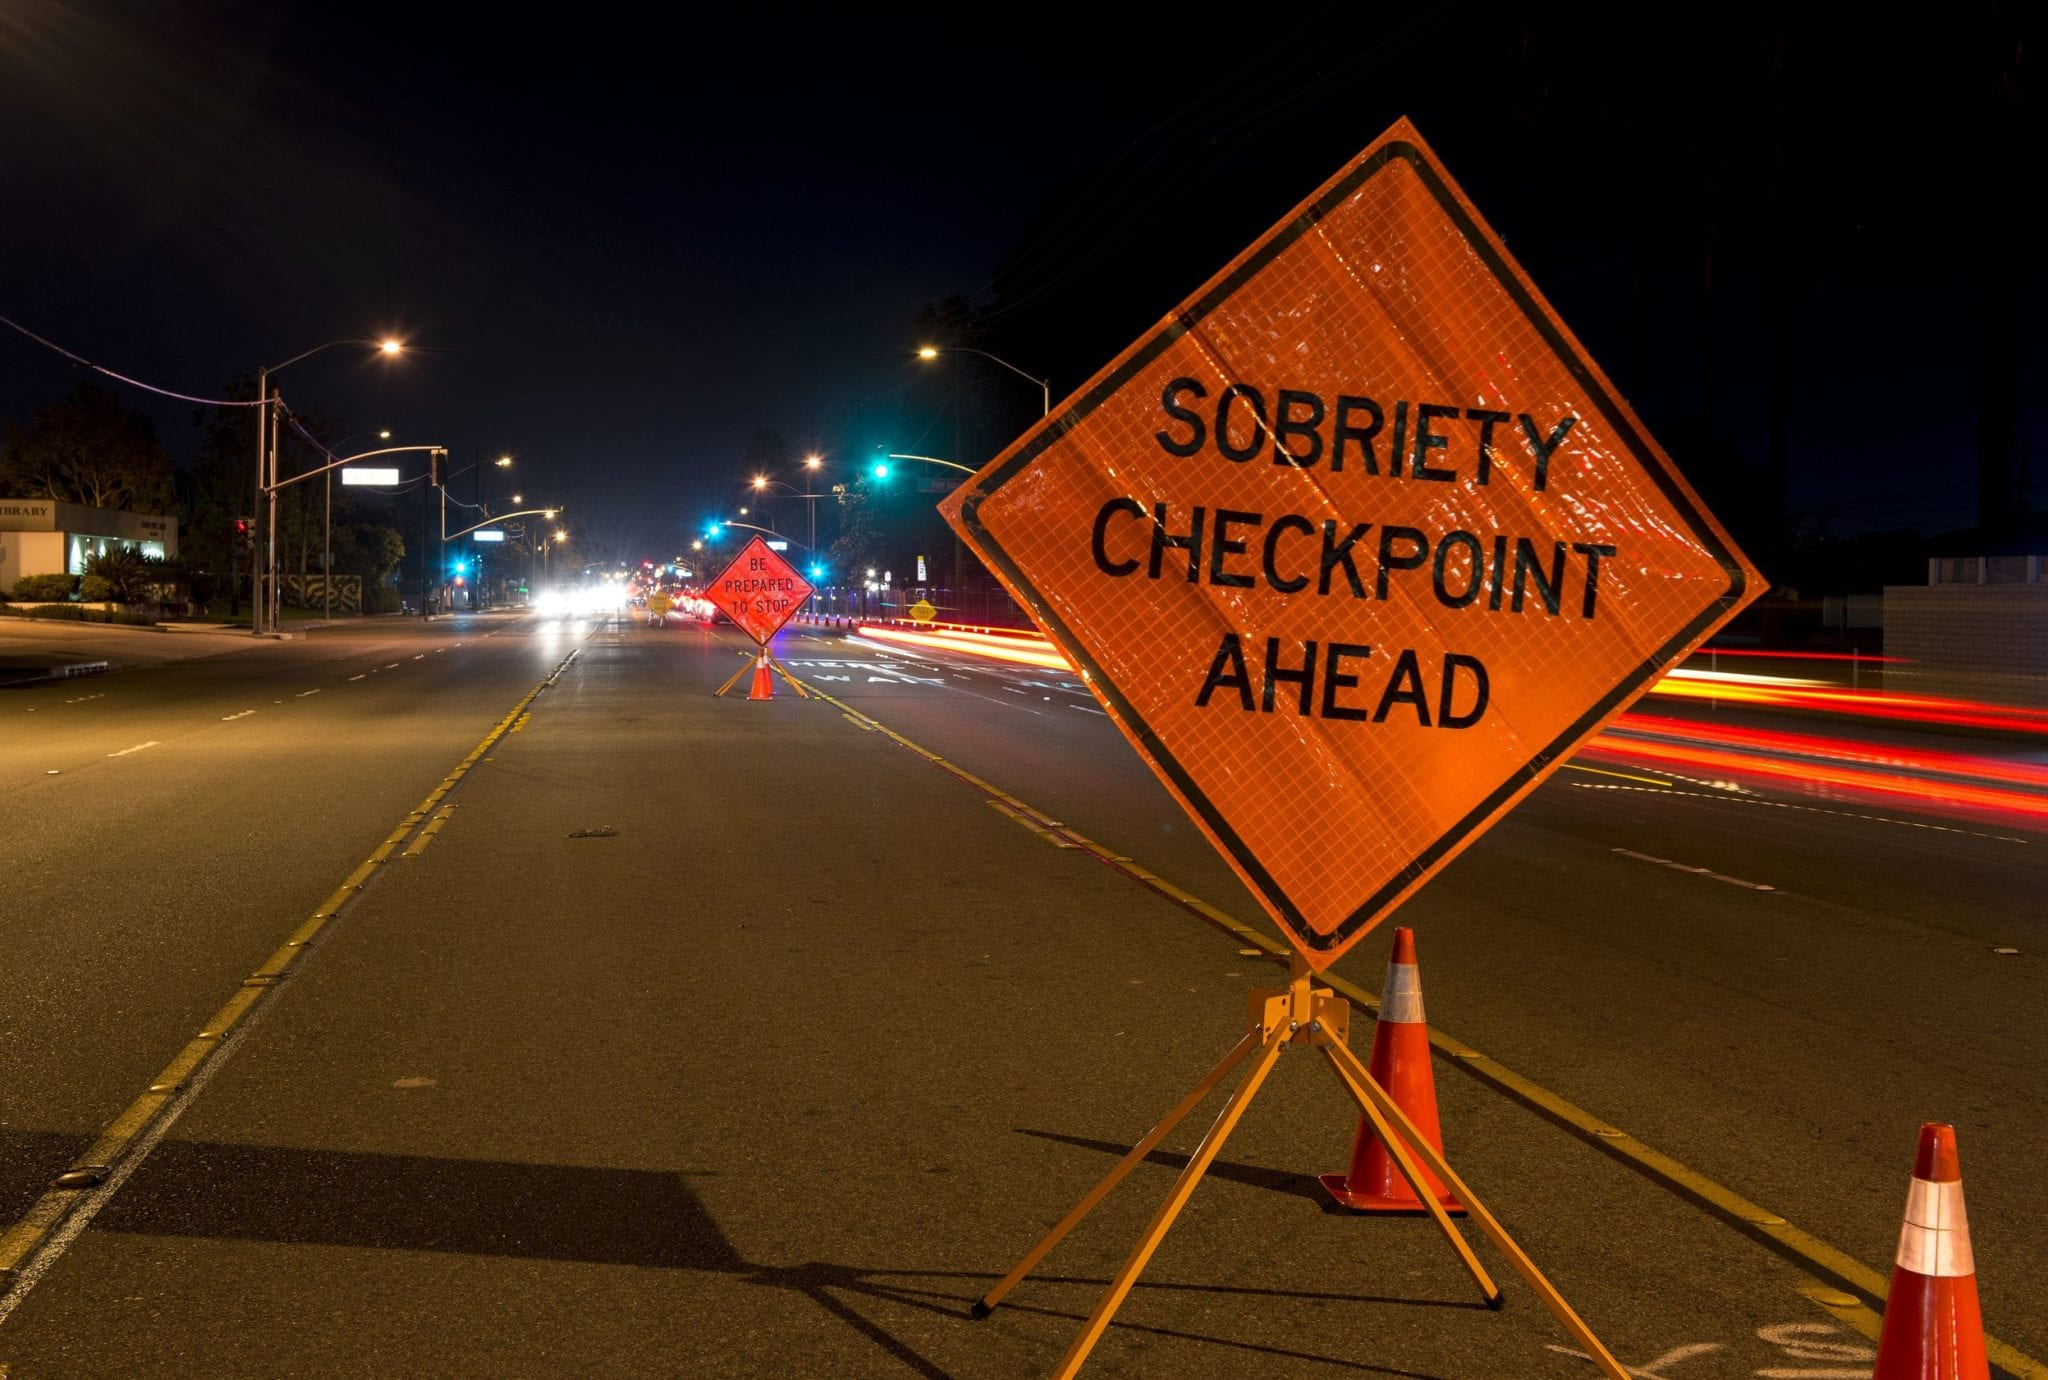 More Texans Will Drive Drunk Over Halloween - Don't Get Charged